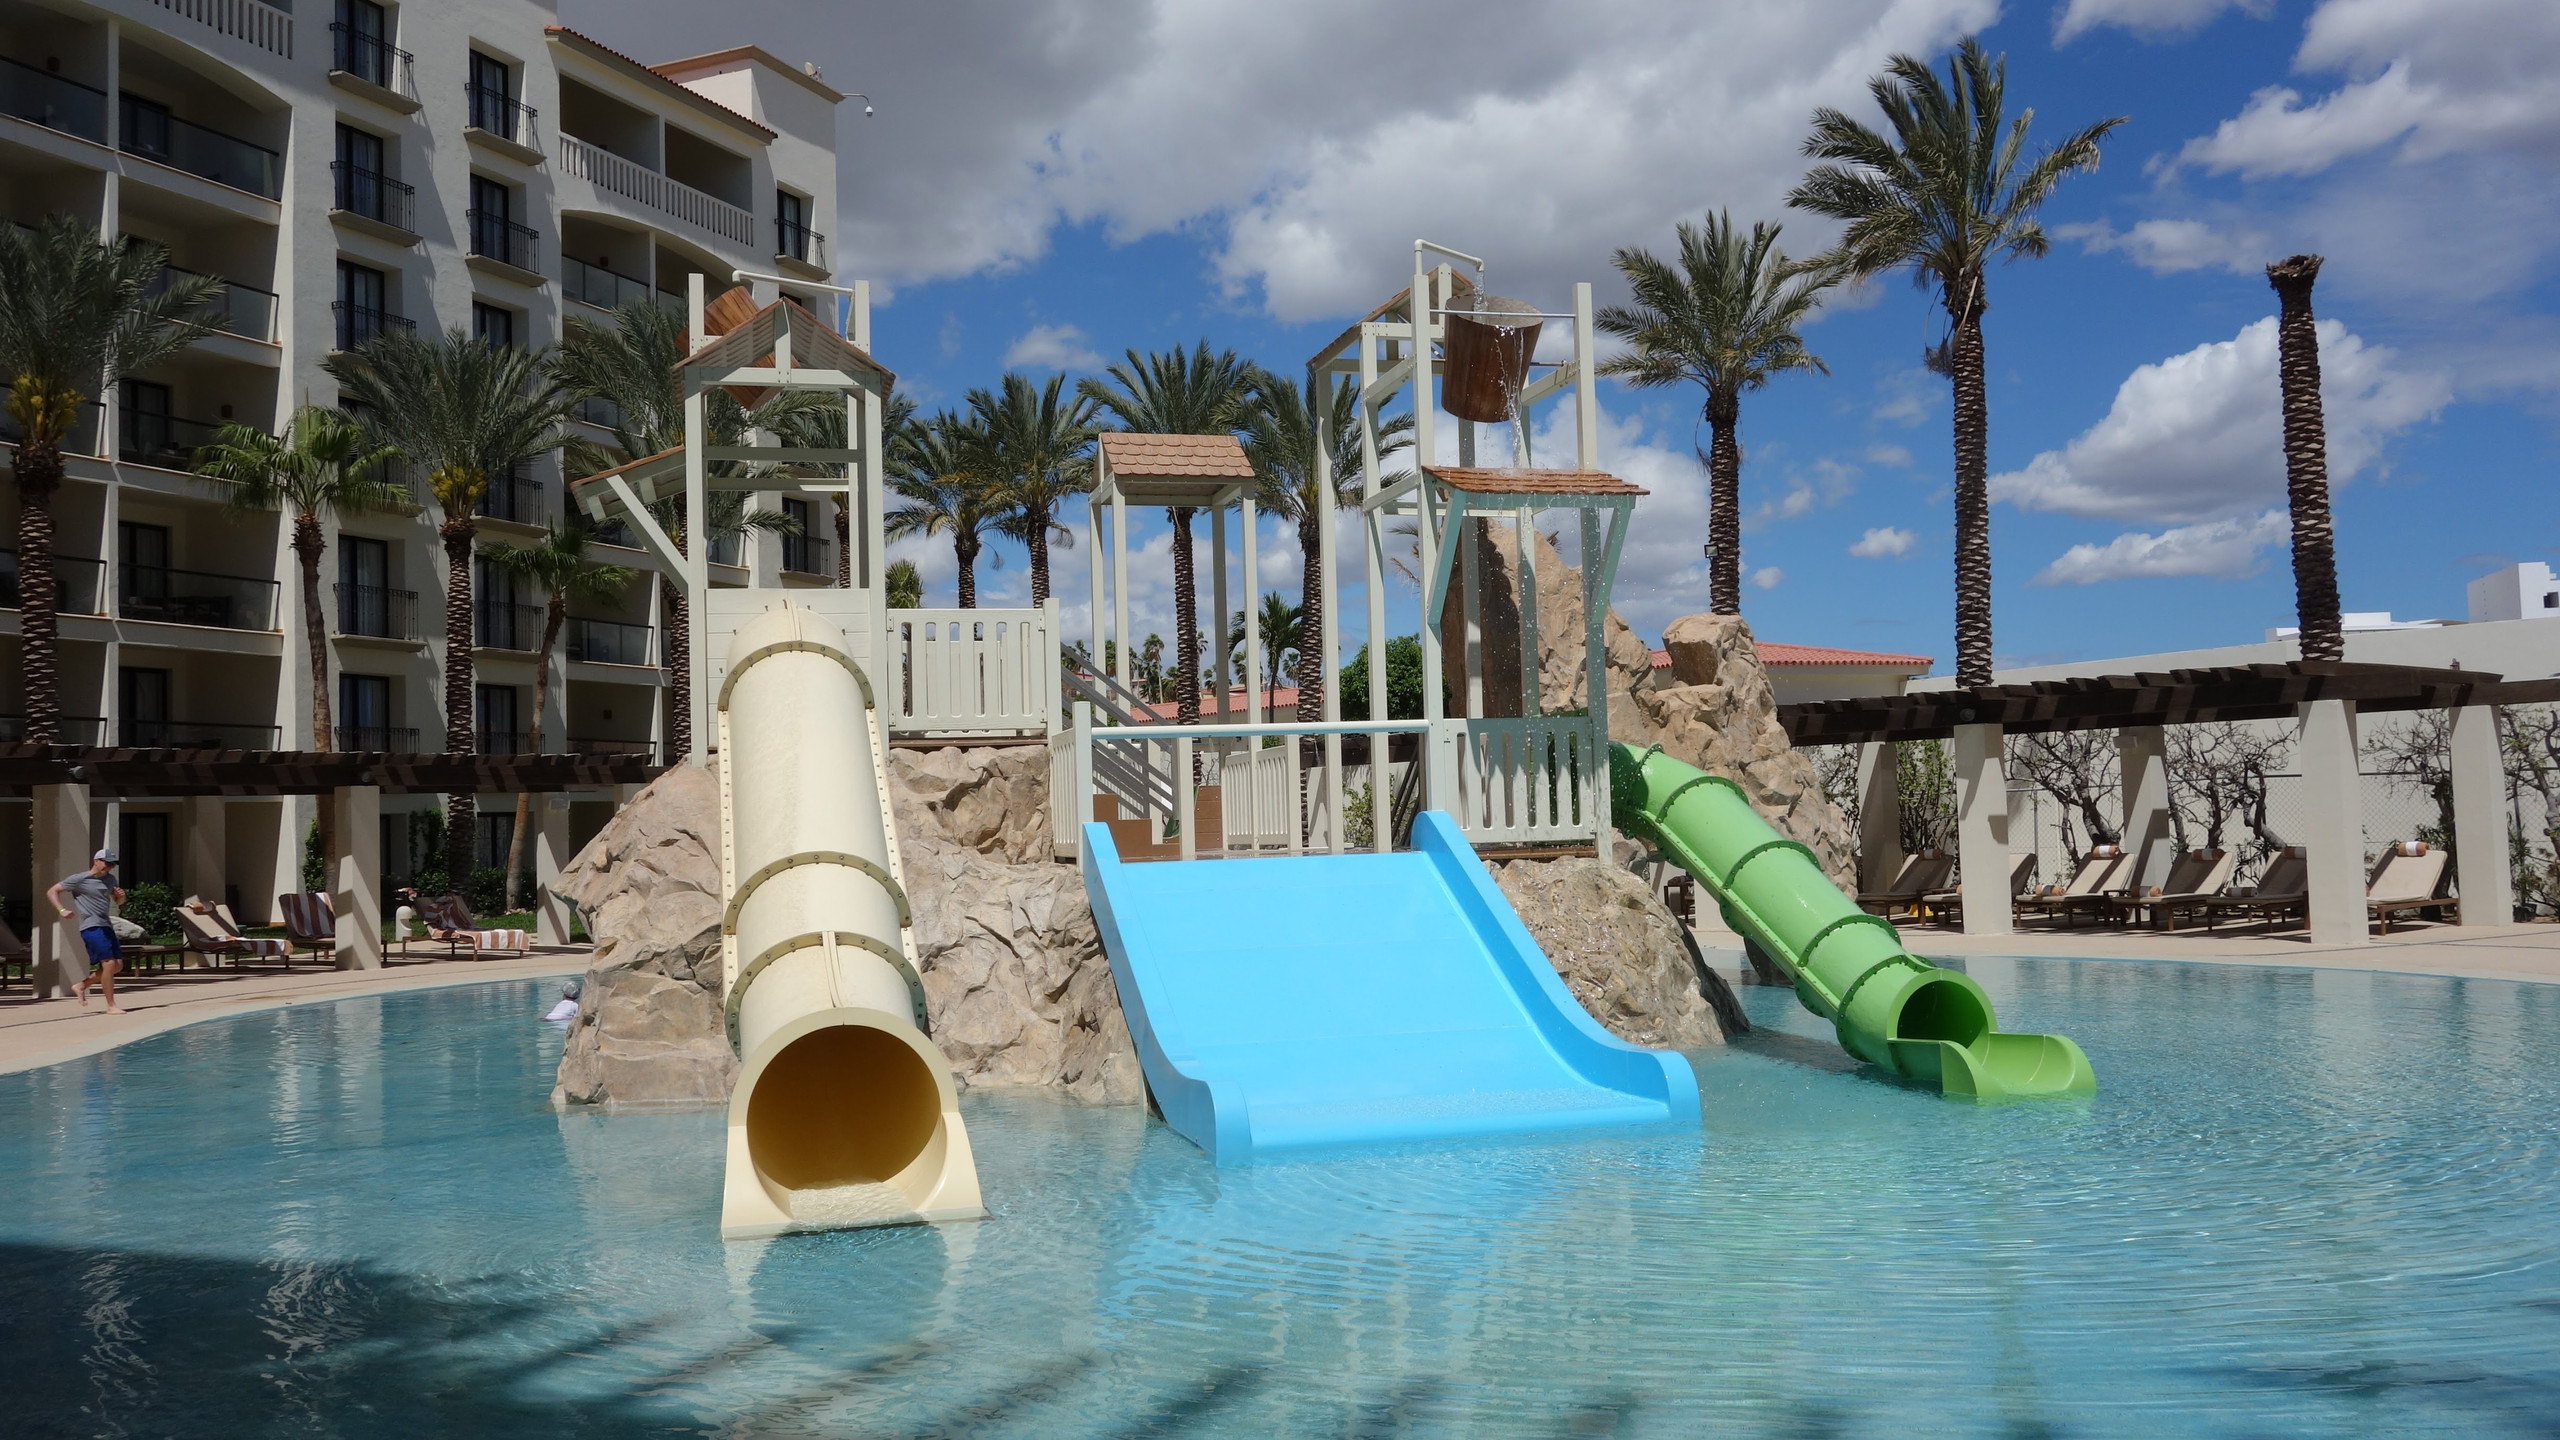 The kids area is on one side of the resort with a fun waterpark.